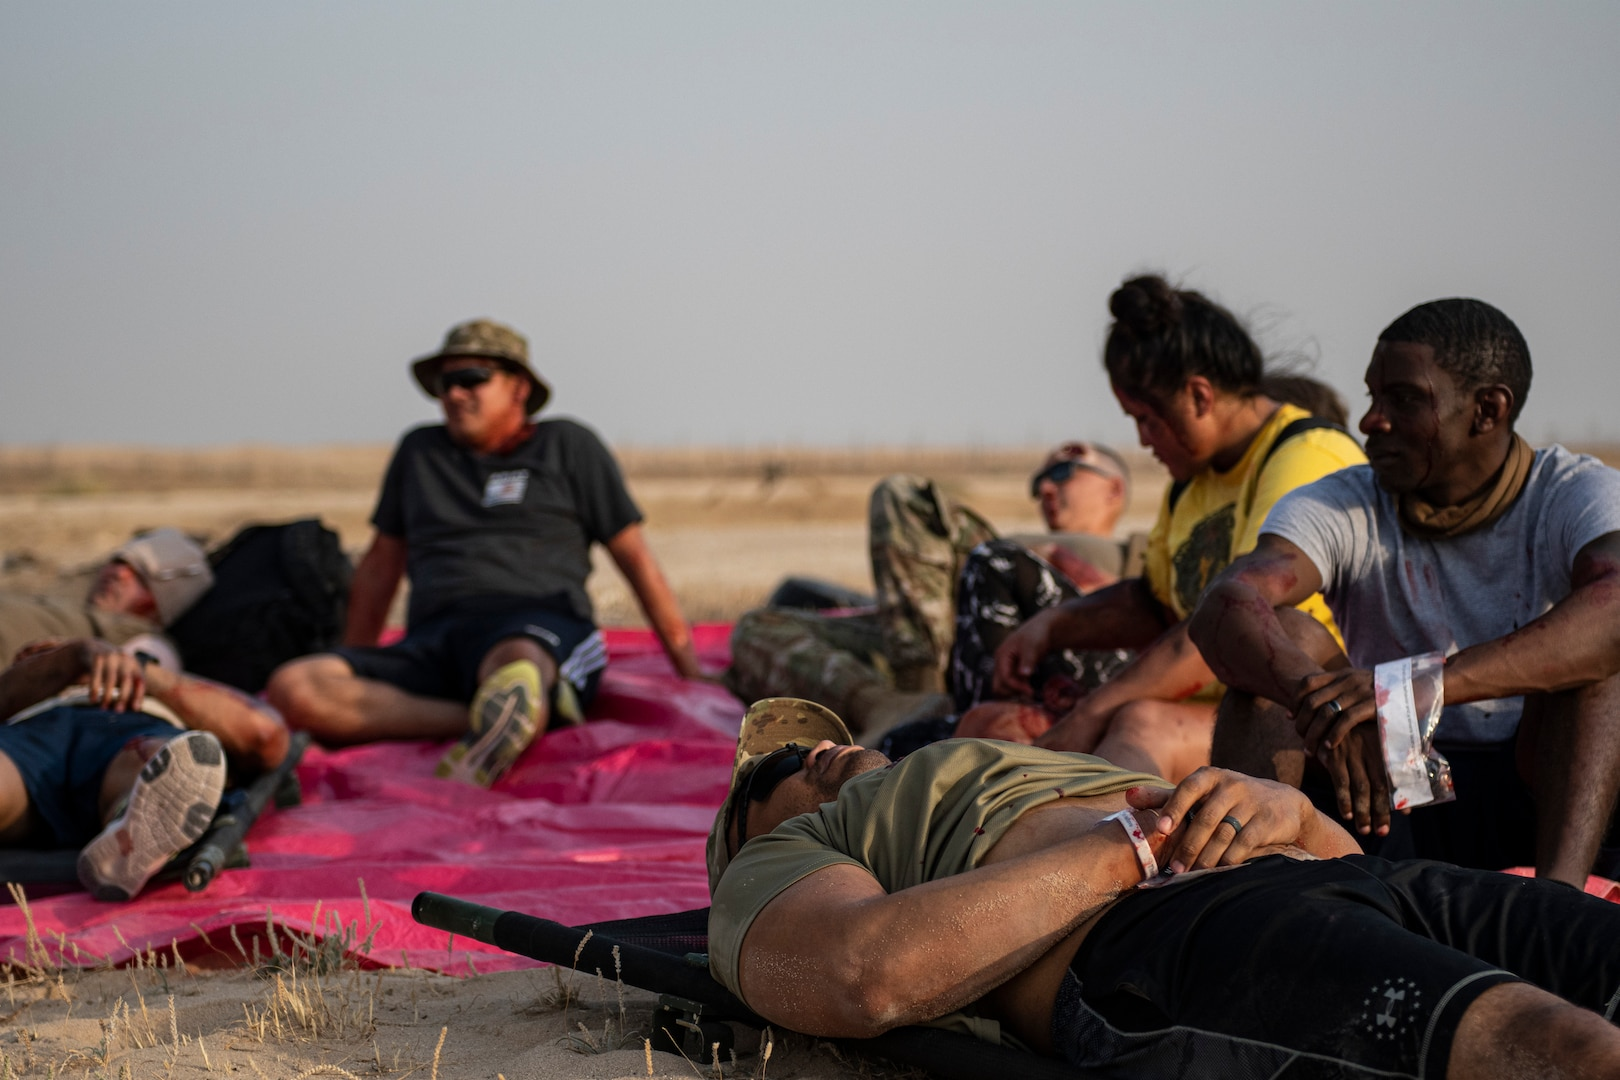 Volunteers acting as casualties with simulated injuries gather in the desert.